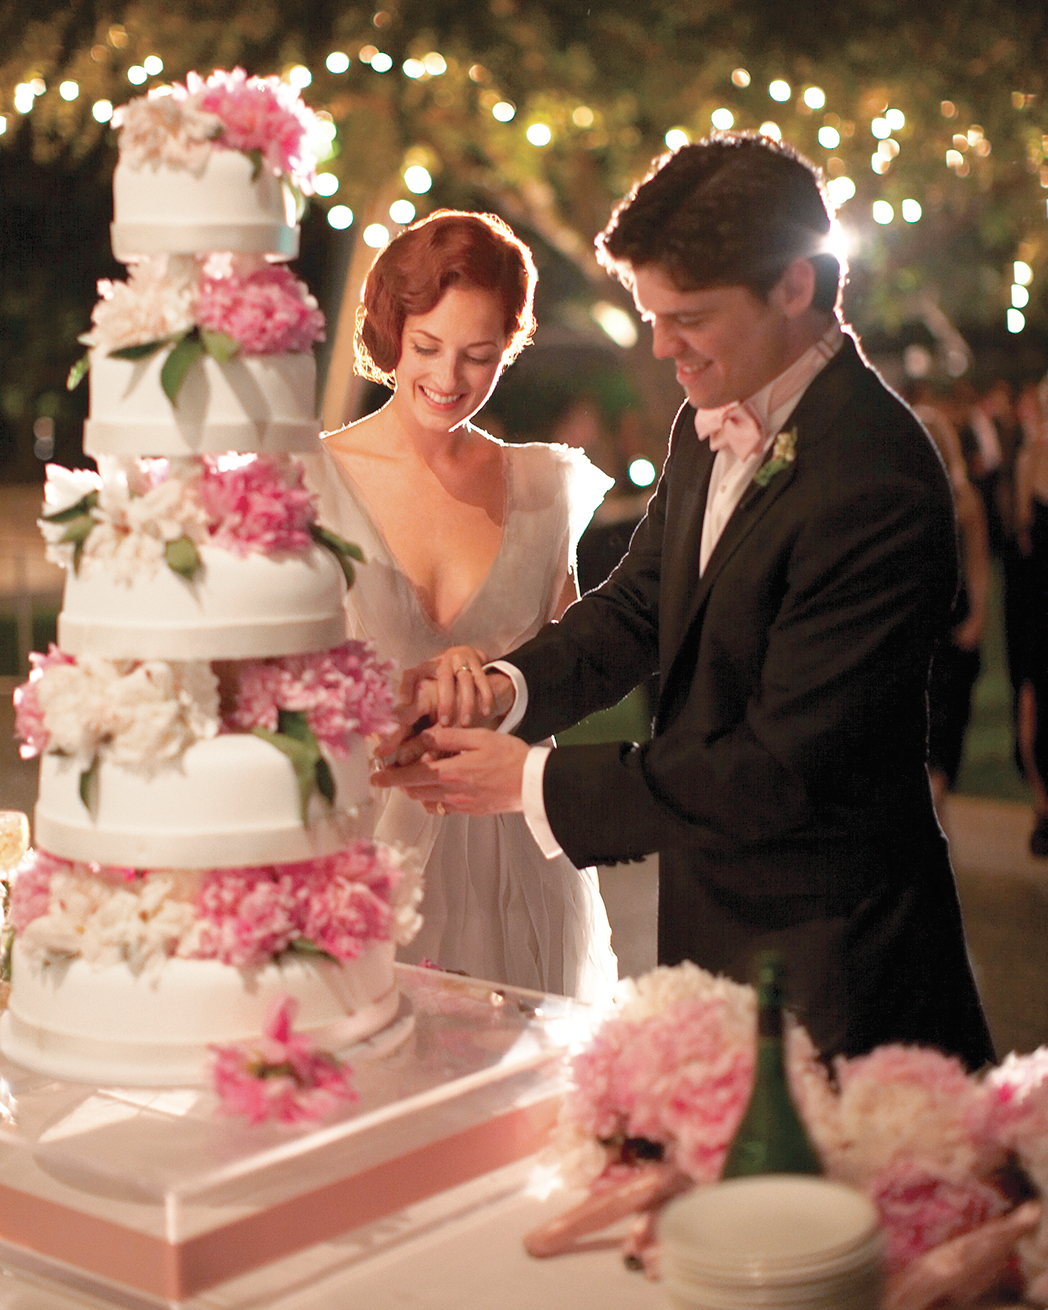 Taylor and Chase cut the cake -- a five-tier, fondant-covered tower of vanilla cake with a fresh-strawberry filling, which was topped with dozens of lush pink and white peonies in full bloom.